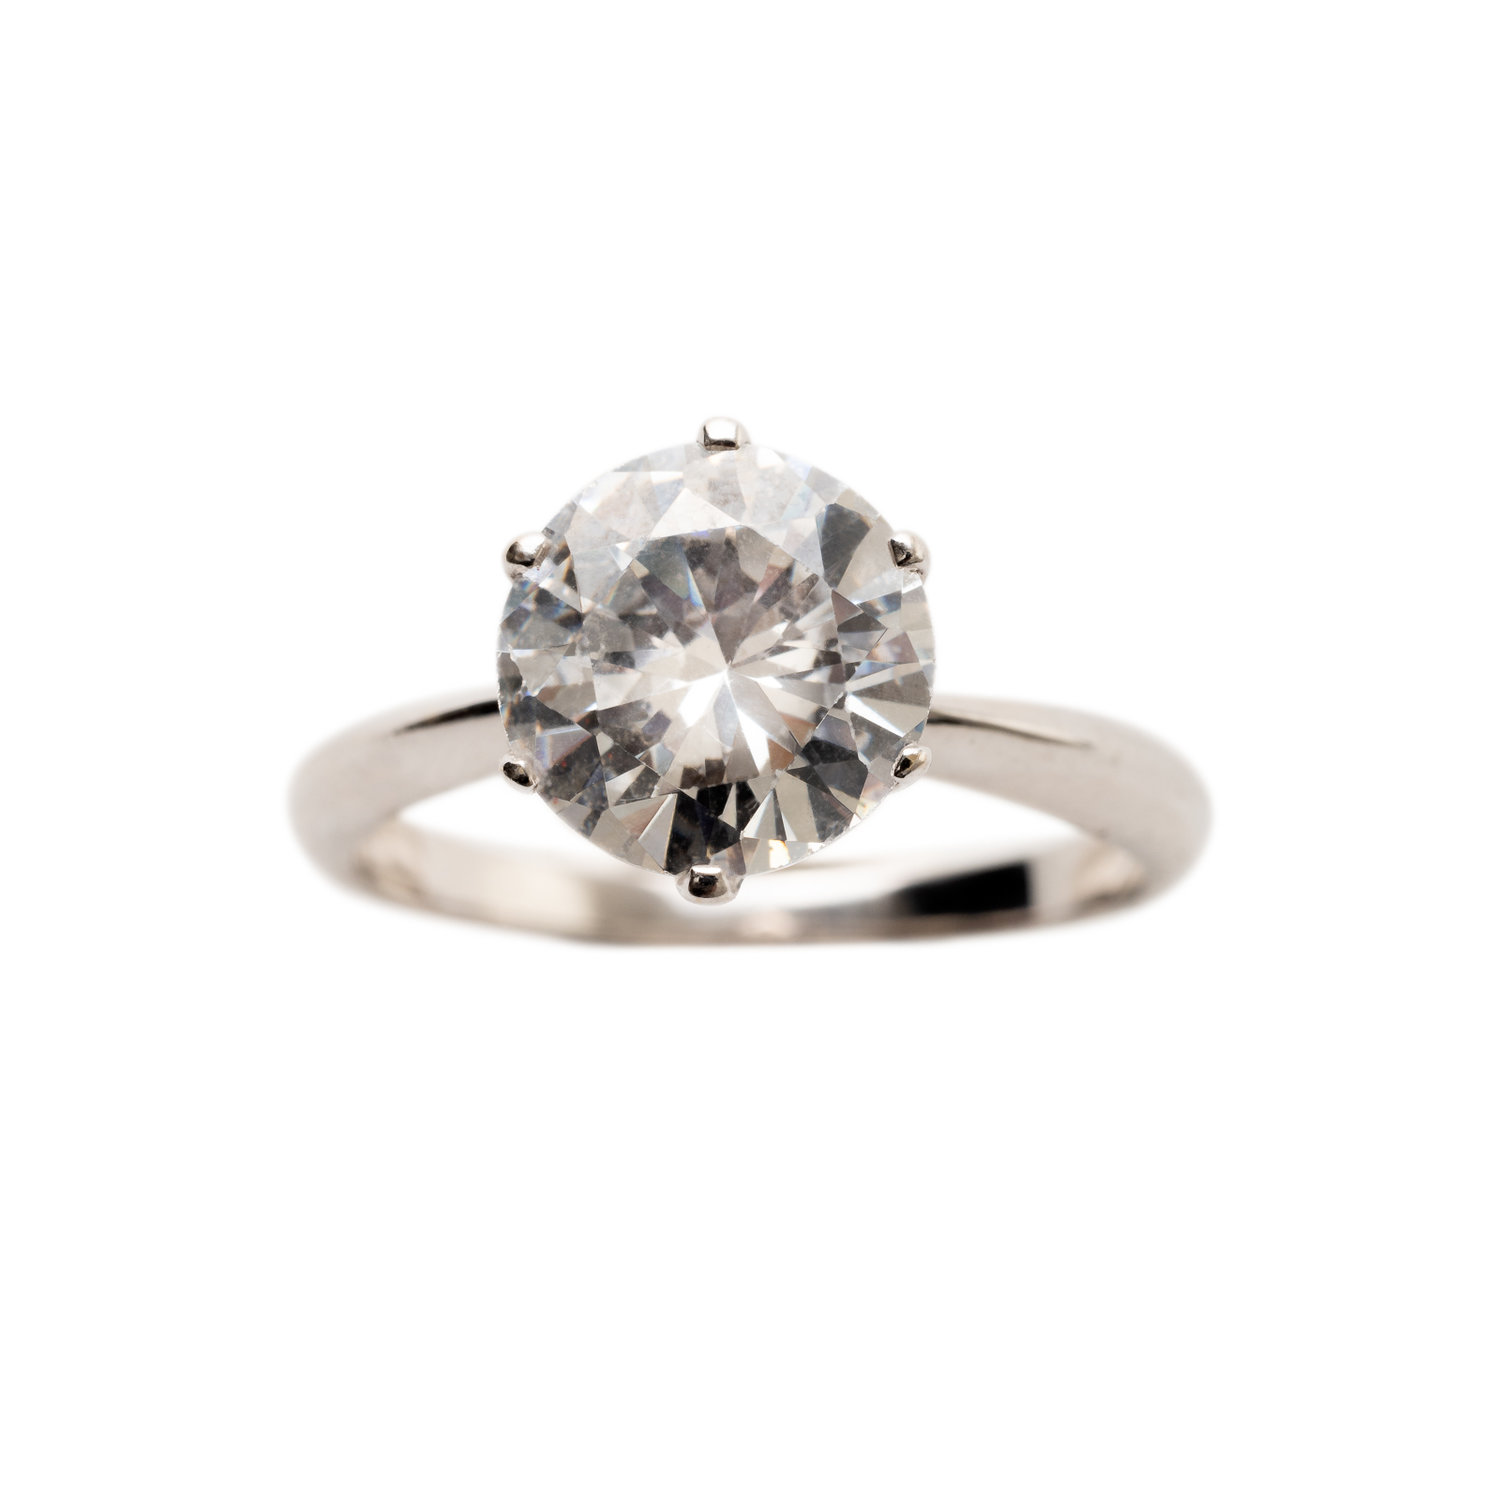 SOLITAIRE DIAMOND RING - Price upon request. 18 ct white gold with 2 ct solitaire cut River diamond.